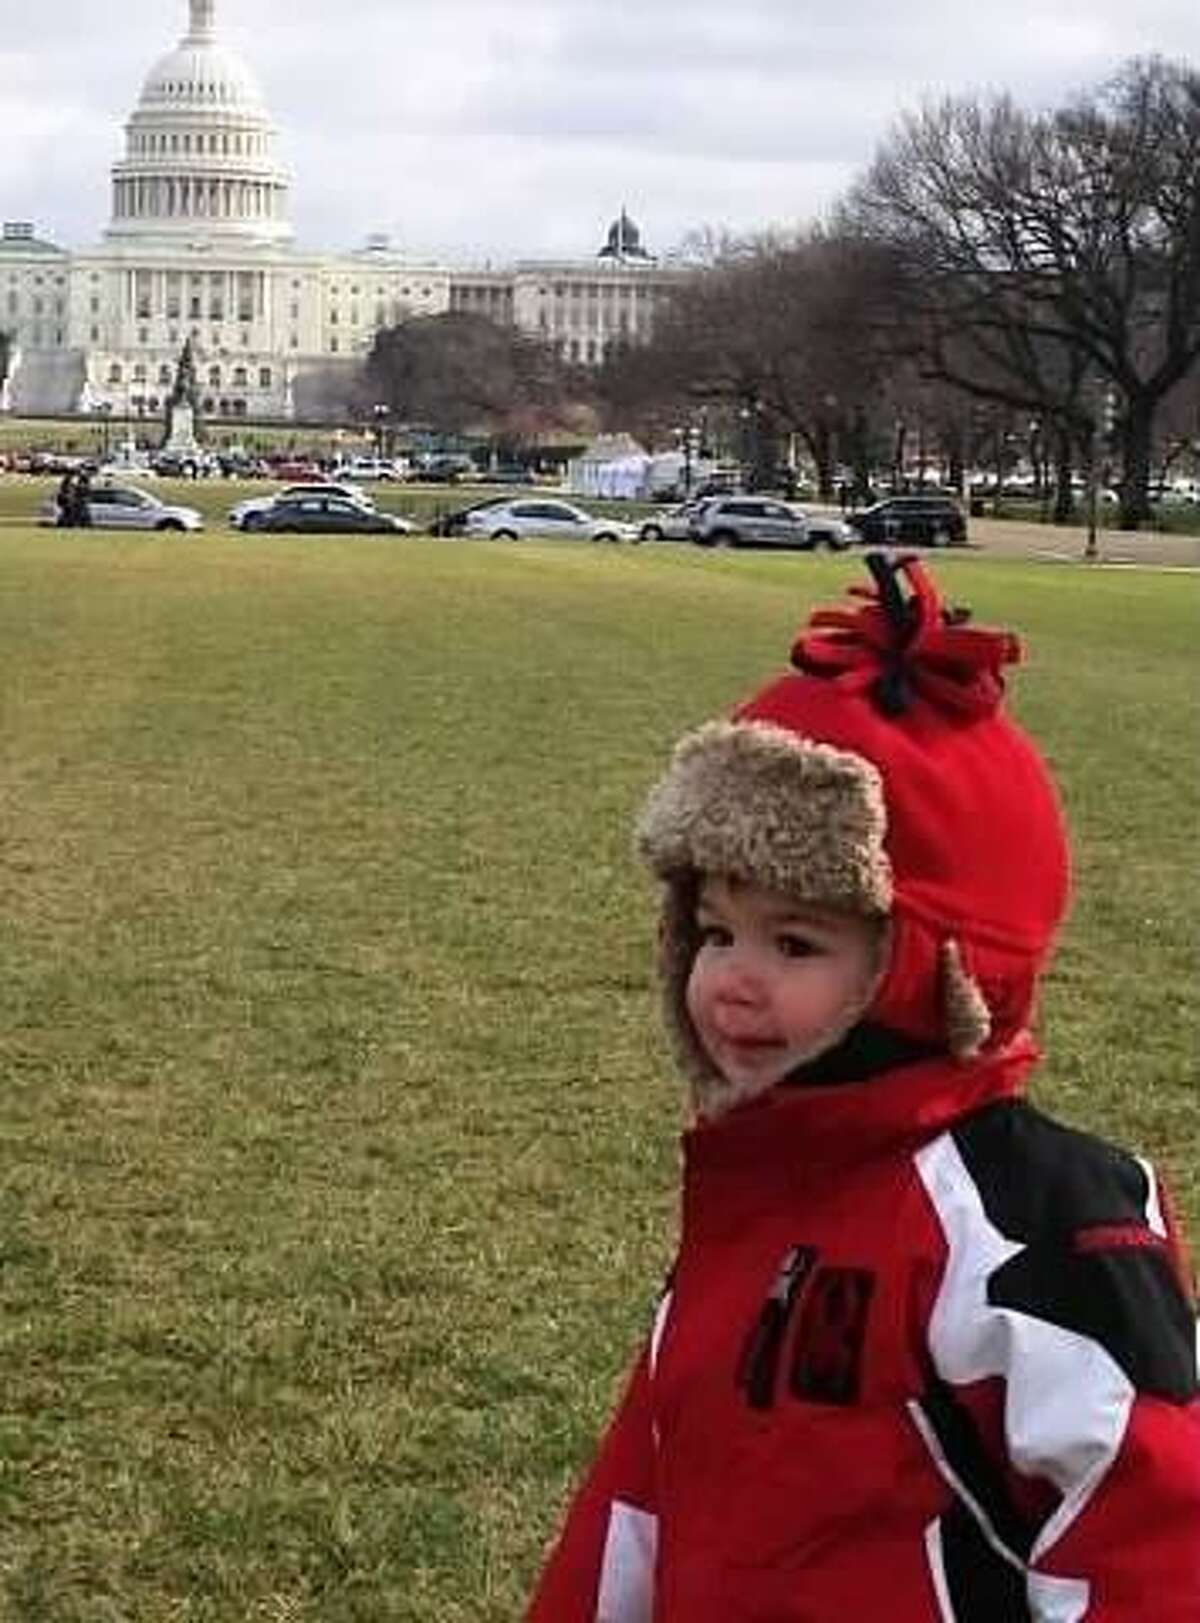 Mac Thomas, 2, died last year when he became tangled in a blind in the bedroom of his home in Maryland. His mom, Erica Barnes Thomas, who grew up in Niskayuna, has joined efforts to push for stricter nationwide safety standards for the window blind industry.